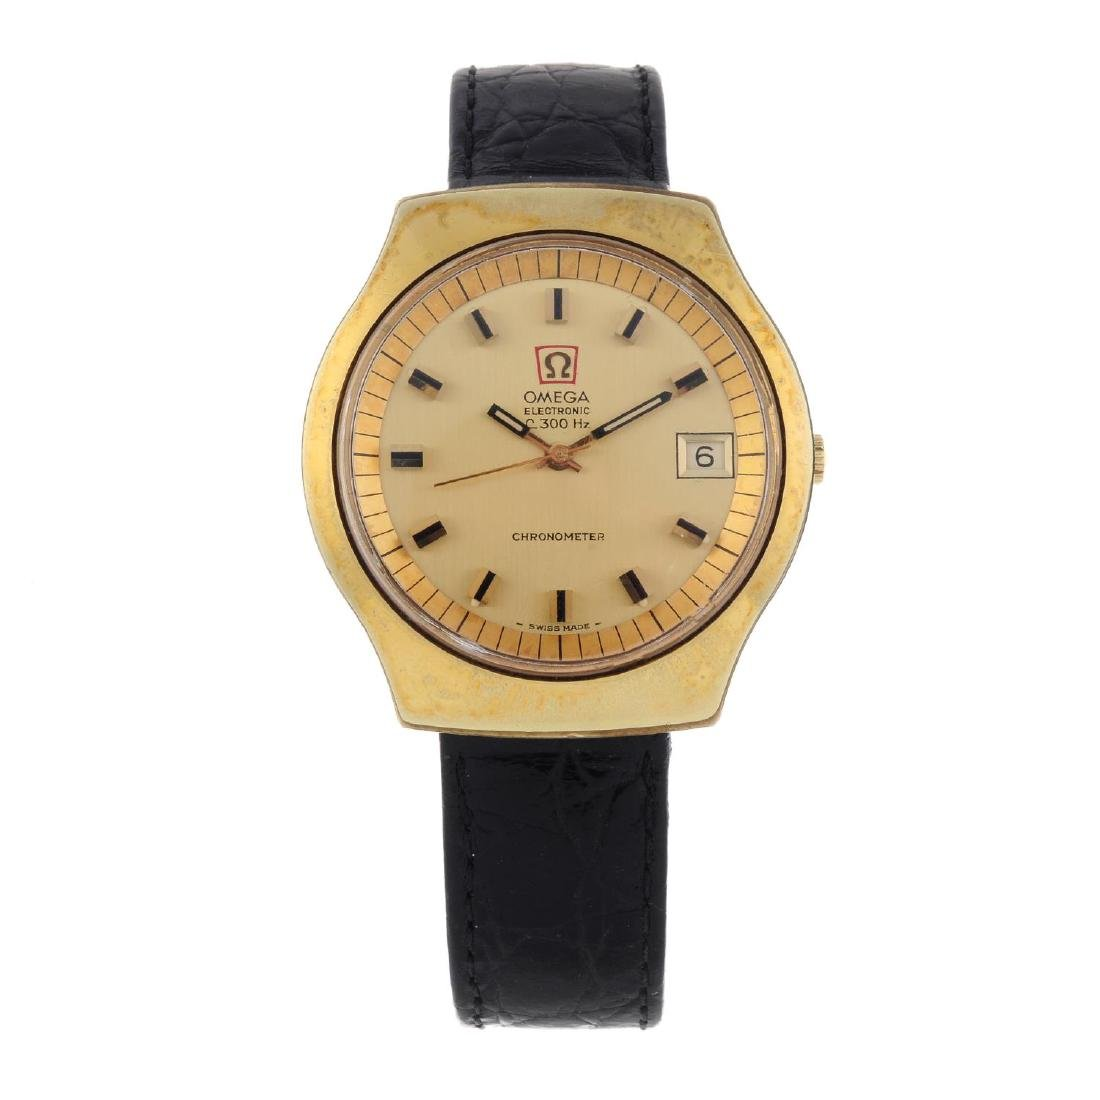 OMEGA - a gentleman's F300Hz wrist watch. Gold plated